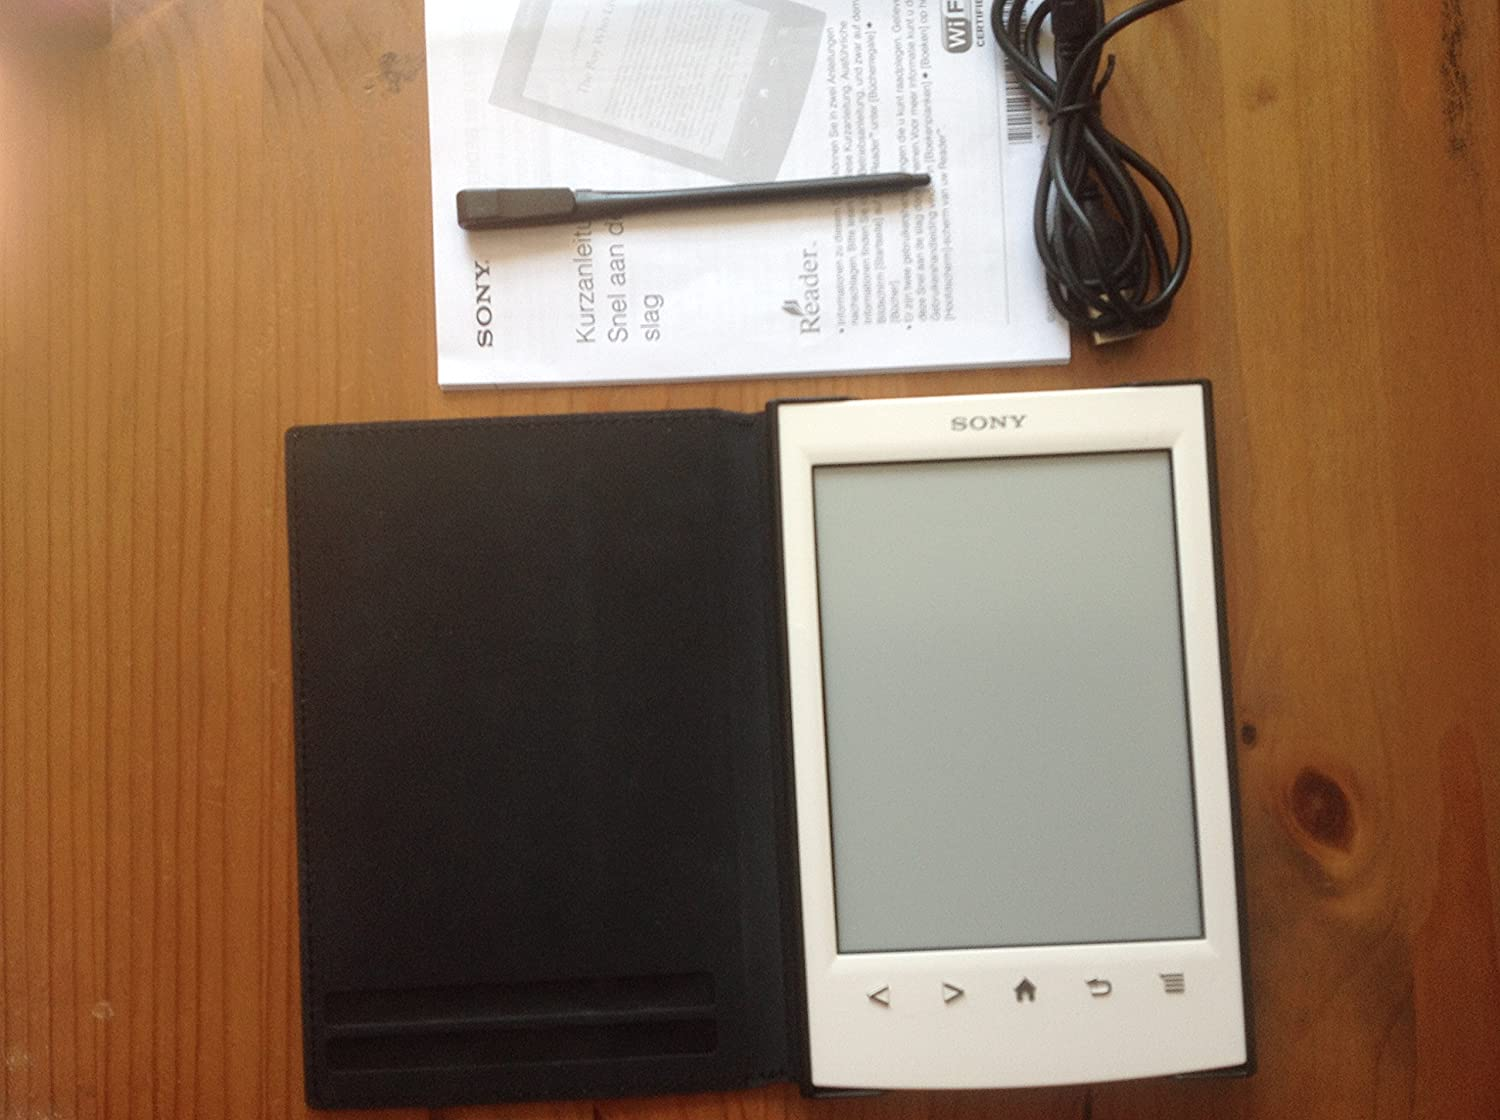 Sony - Sony Reader Prs-T2 Wi-Fi Blanco - Ebook: Amazon.es: Electrónica